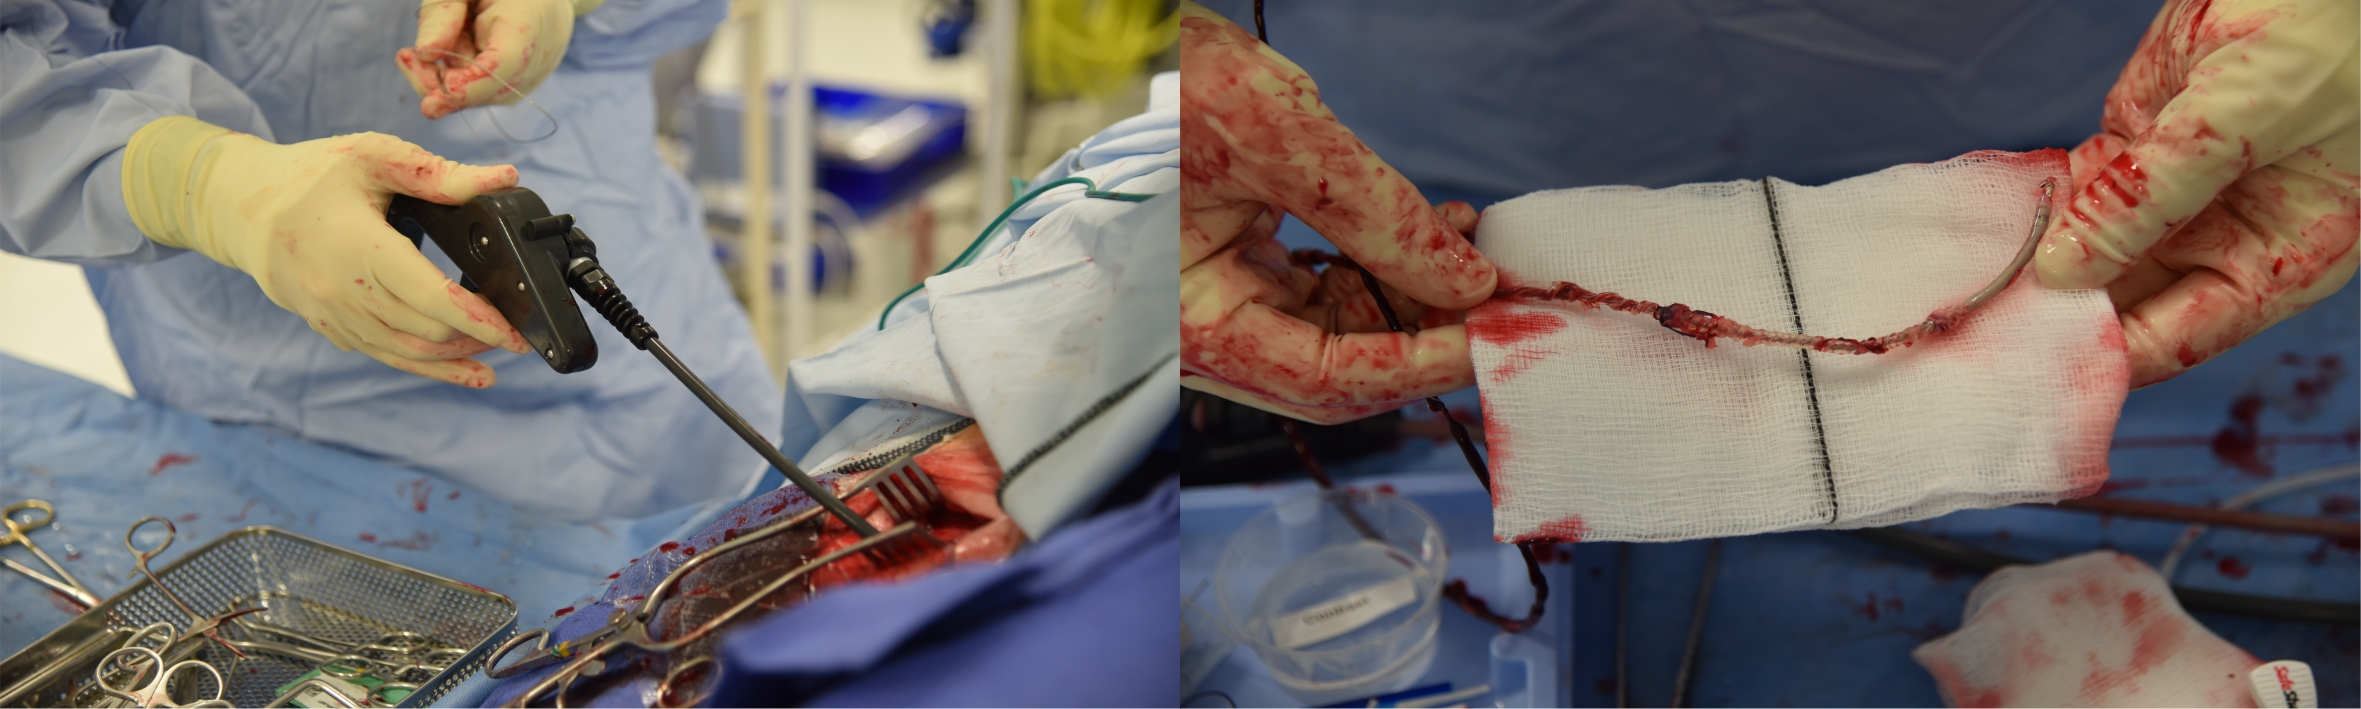 Najam - Pacing: Figure 3. An Evolution® power mechanical sheath in use (left). An extracted lead with attached fibrous tissue (right)